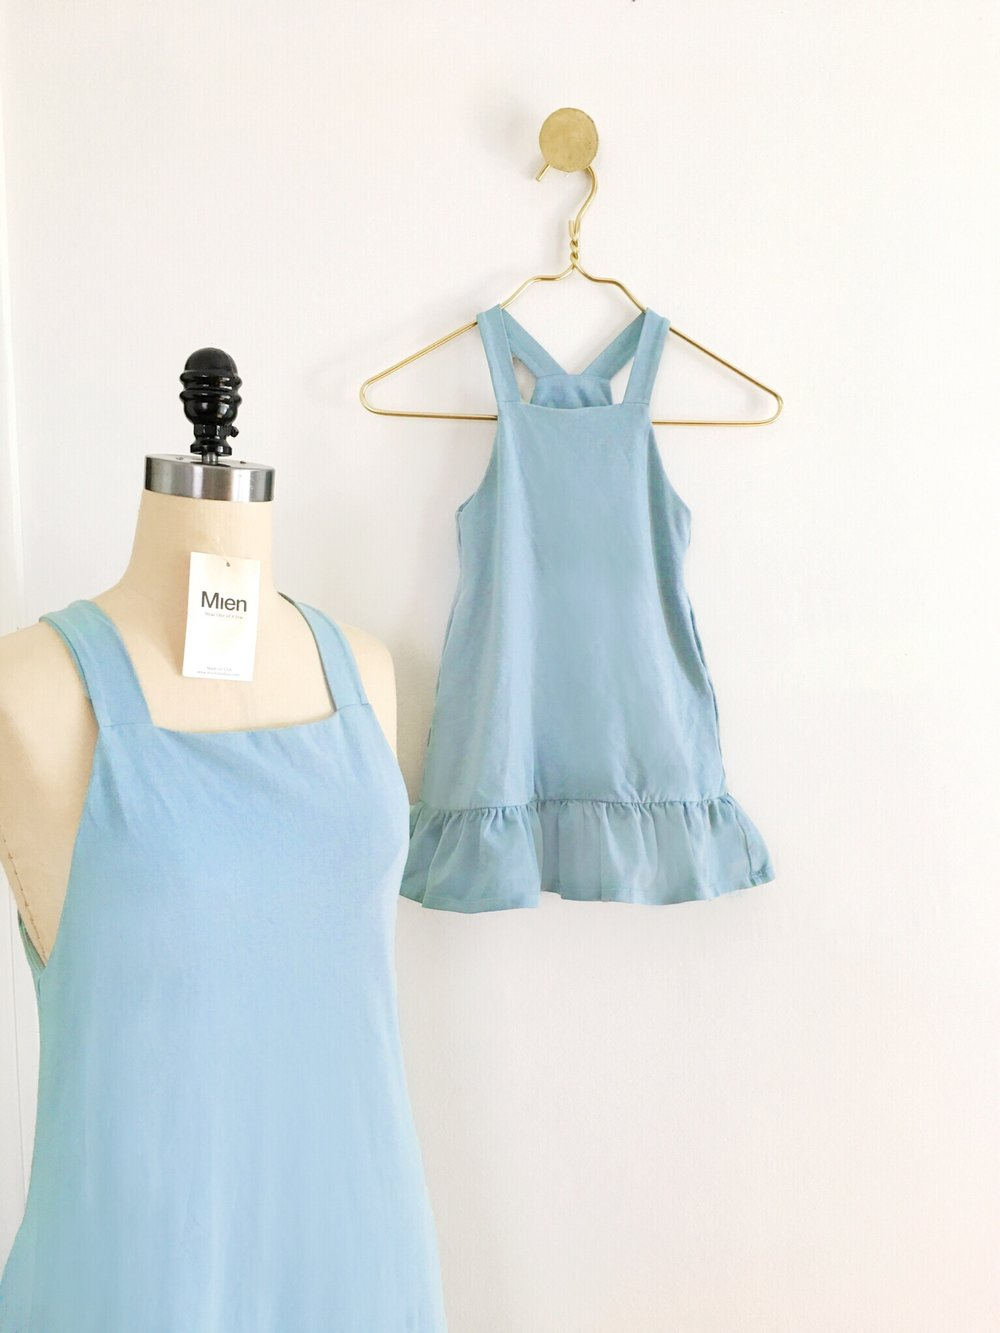 The mama and kiddo pinafore dresses after garment dye - in beautiful powder blue.